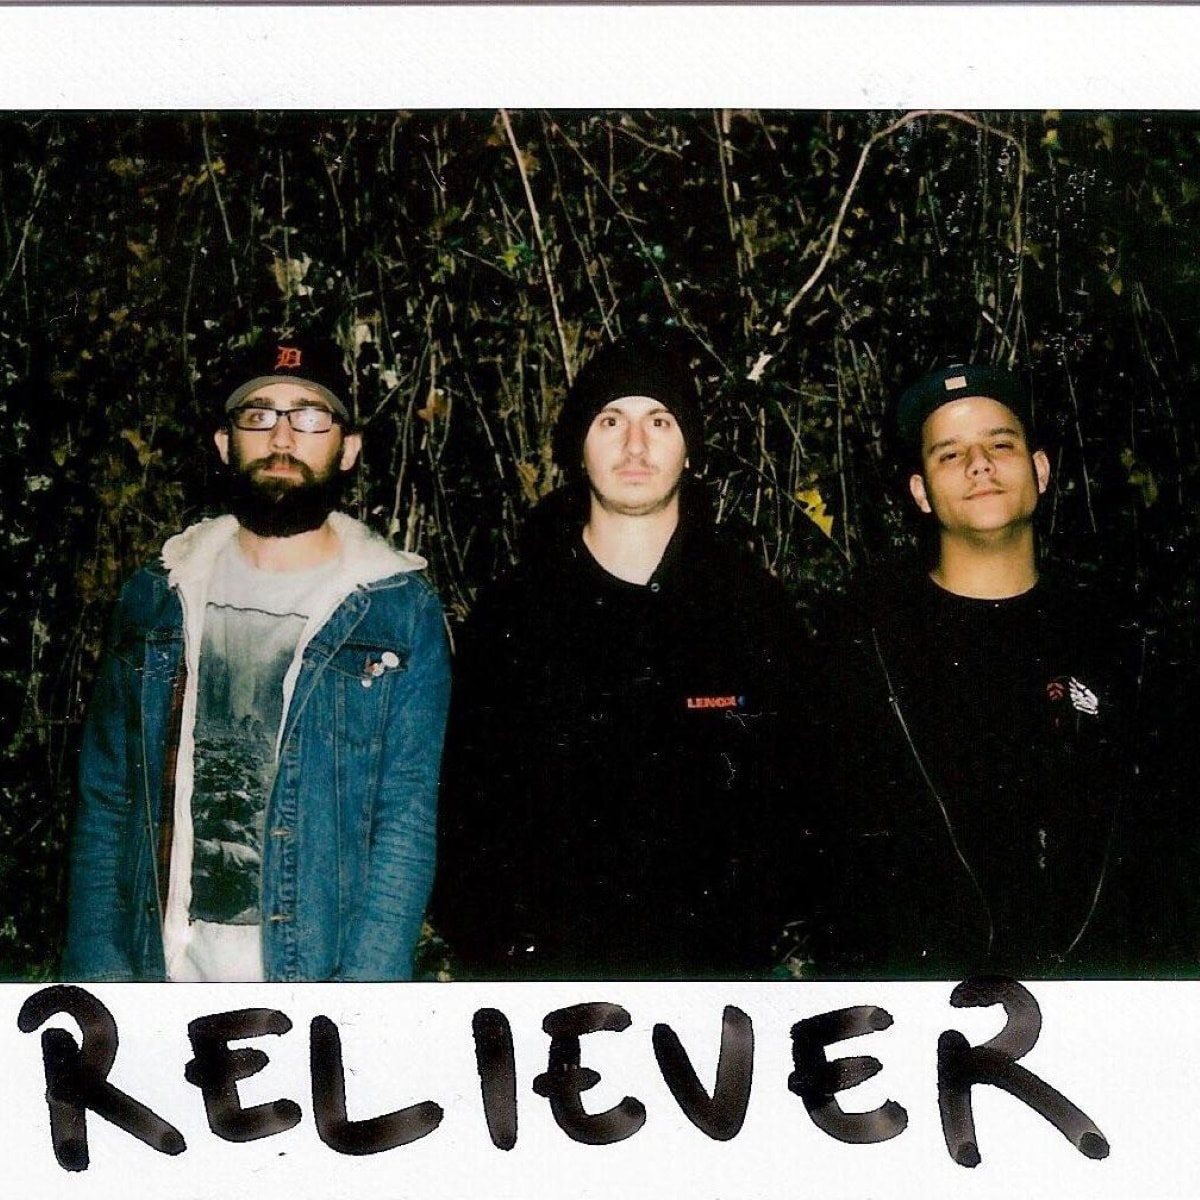 RELIEVER band